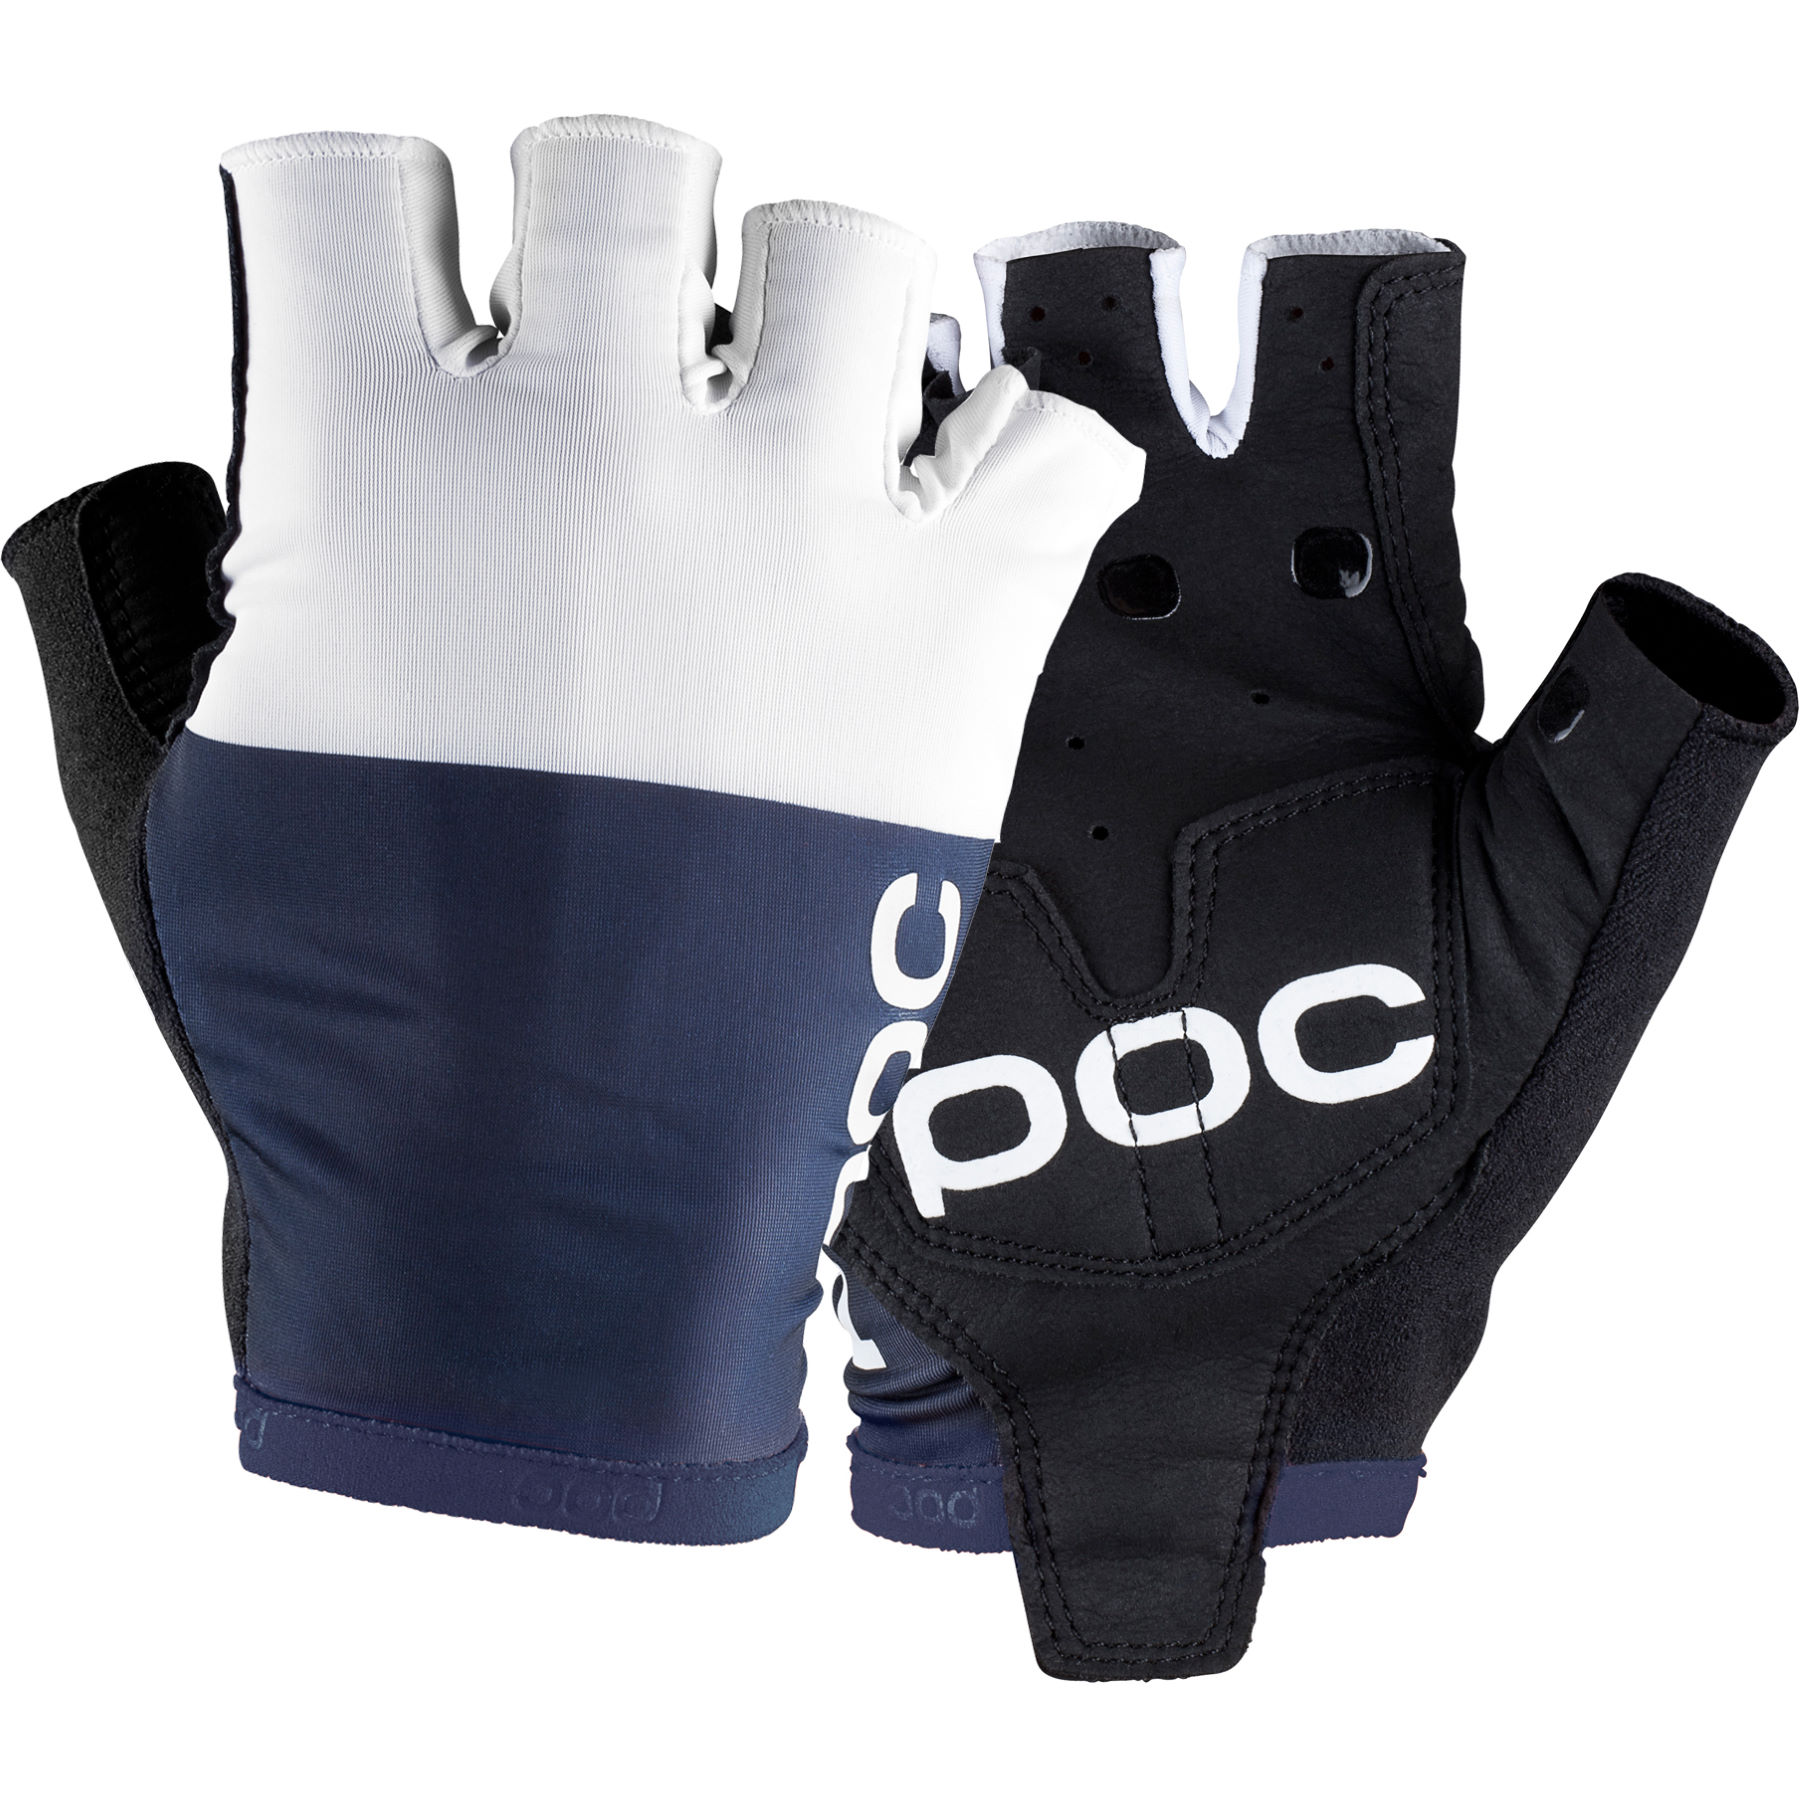 Wiggle | POC Raceday Short Finger Gloves AW15